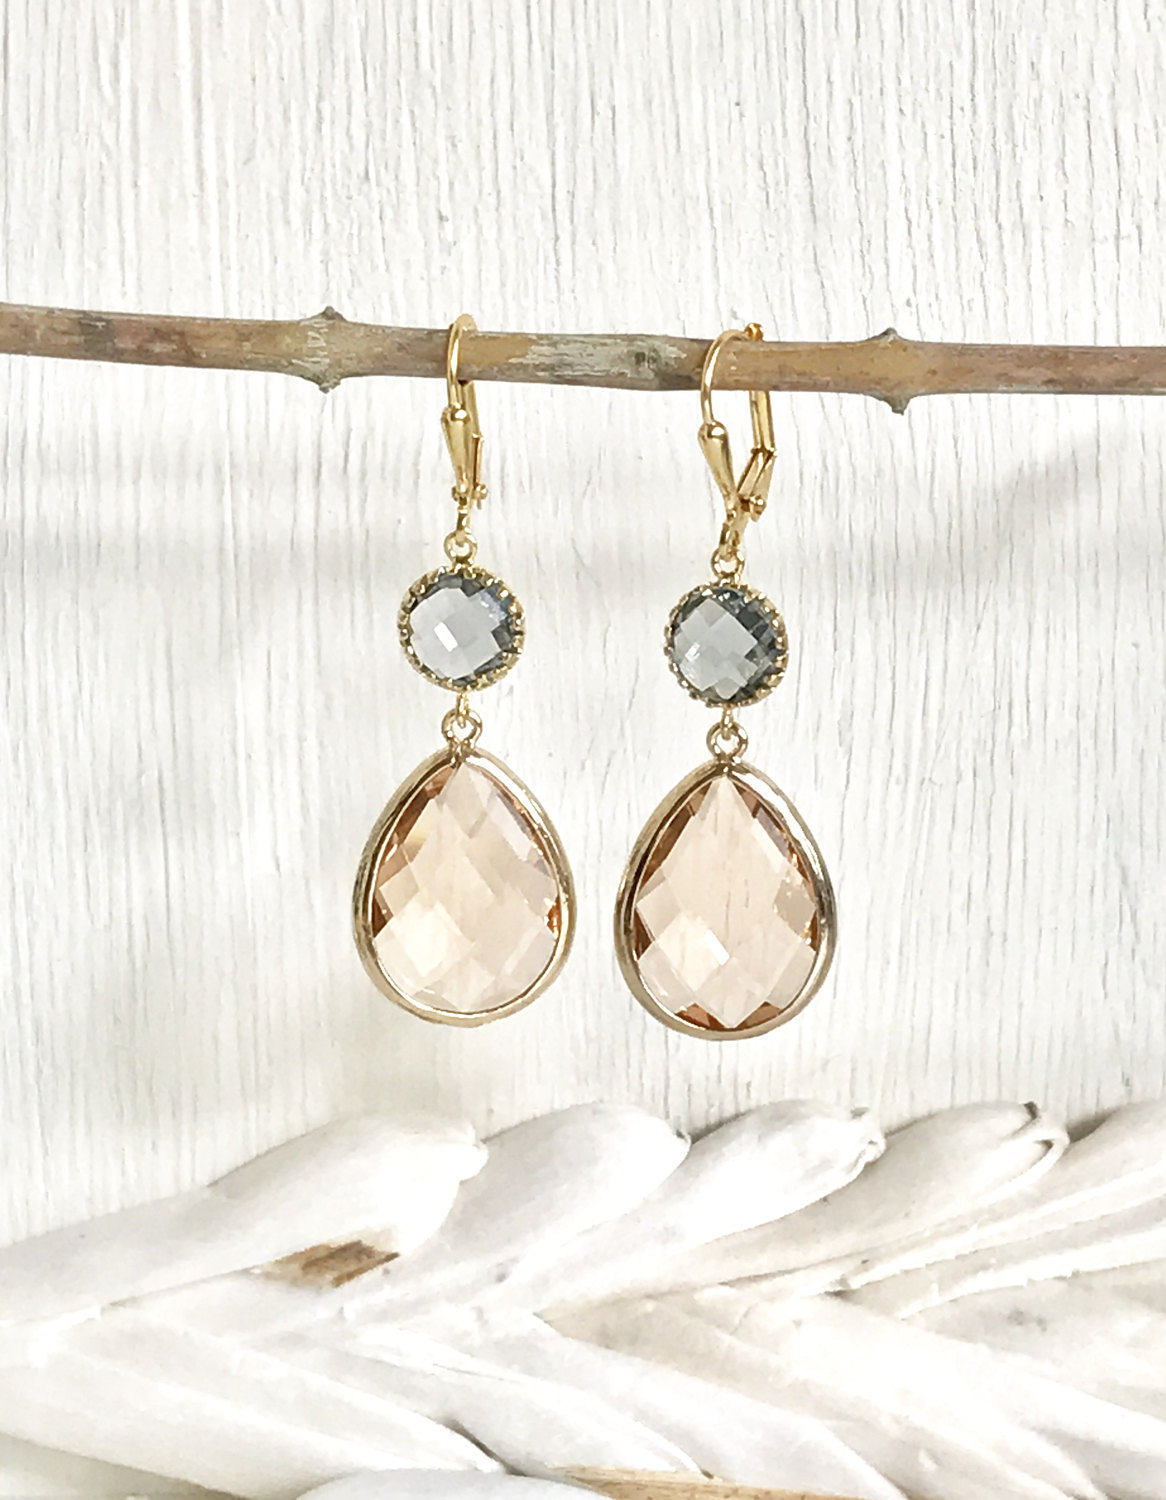 Wedding Bridesmaid Earrings. Bridesmaid Gift. Wedding Jewelry. Bridal Champagne Charcoal Dangle Earrings. Bridesmaid Earrings Jewelry Gold.